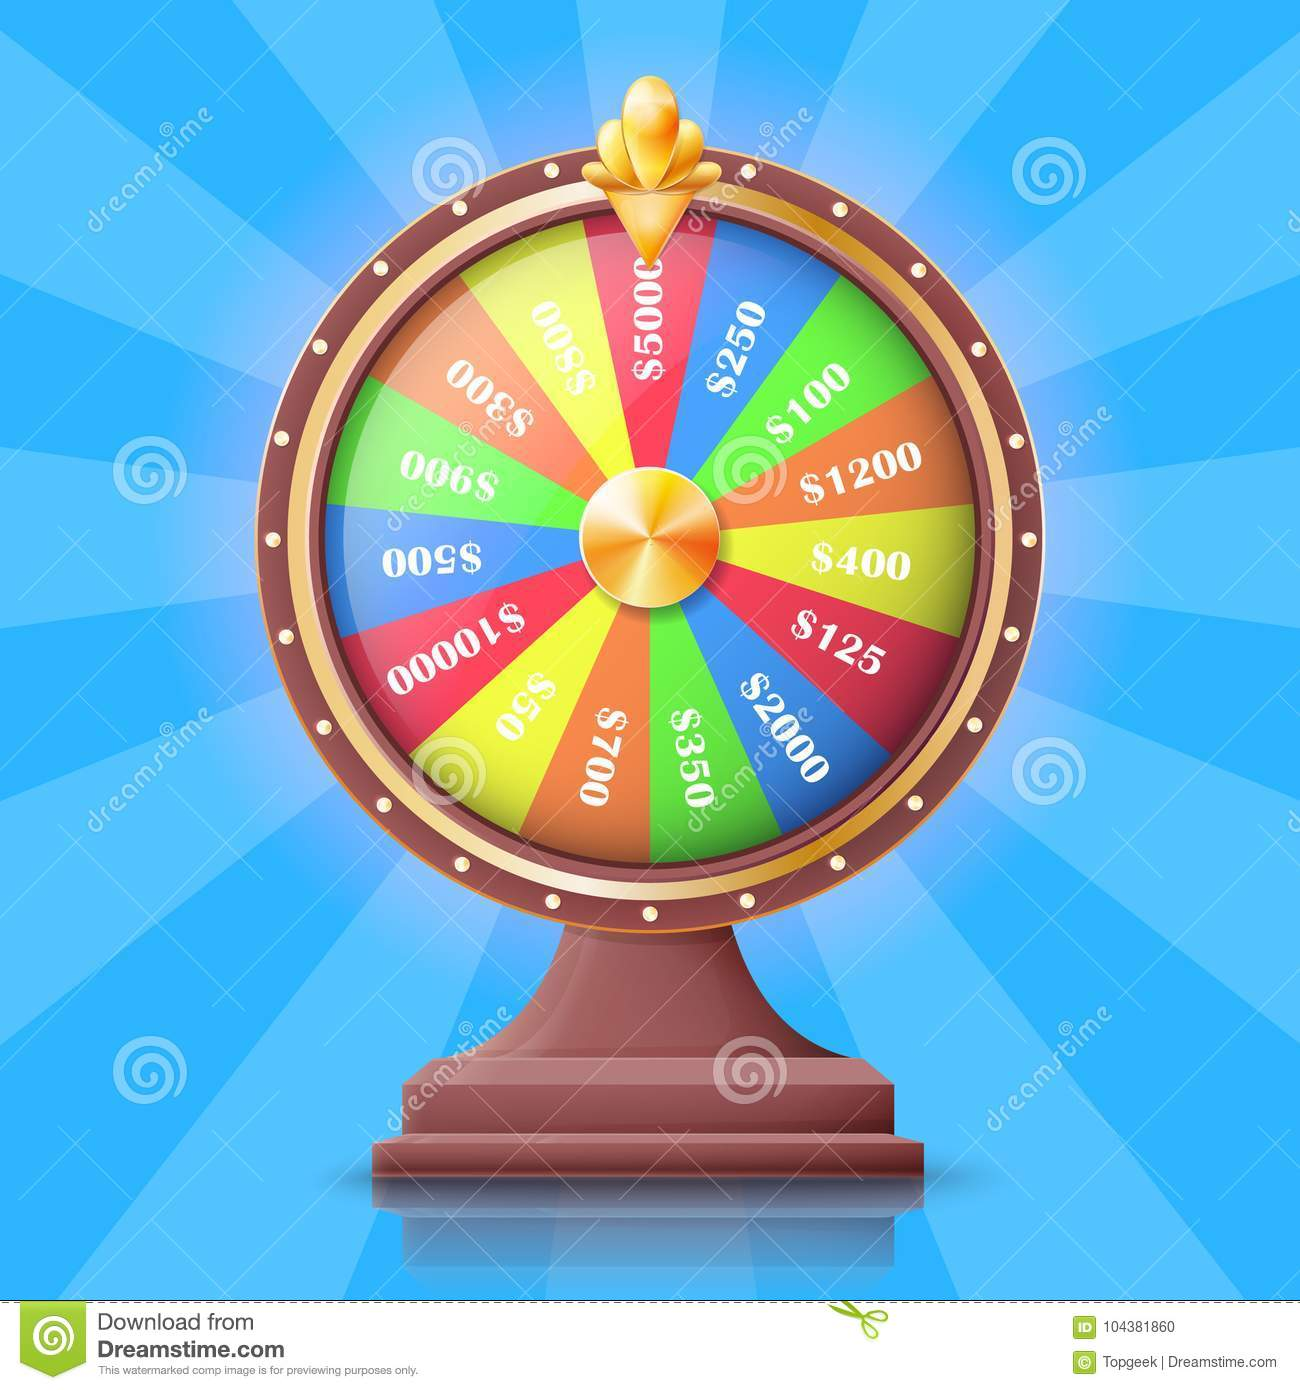 Wheel Of Fortune Prizes